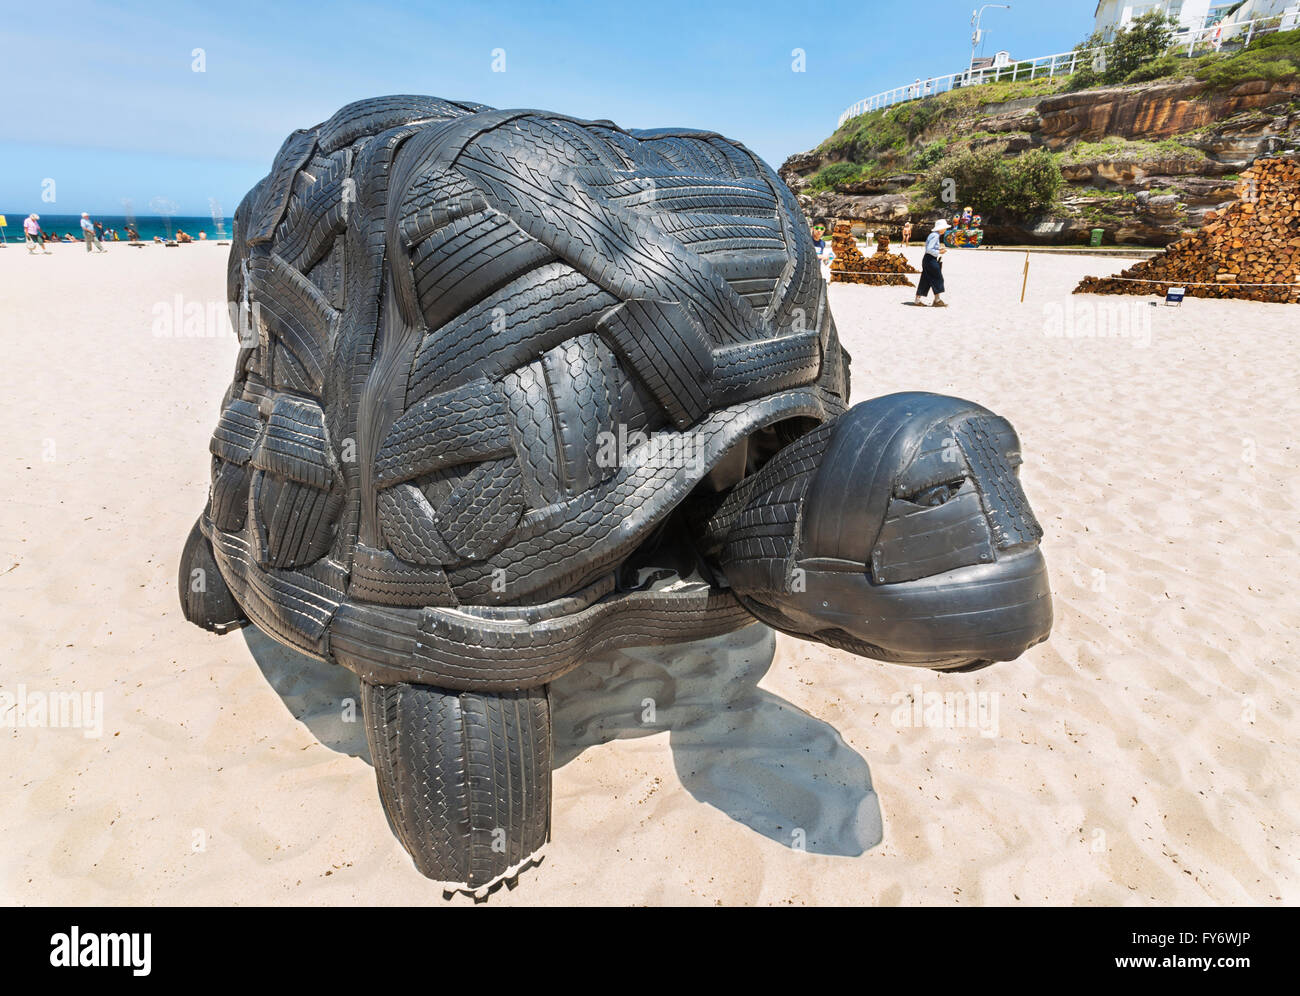 Australia, New South Wales, Sydney, Tamarama Beach, Sculpture by the Sea 2011, annual open air art exhibition. - Stock Image